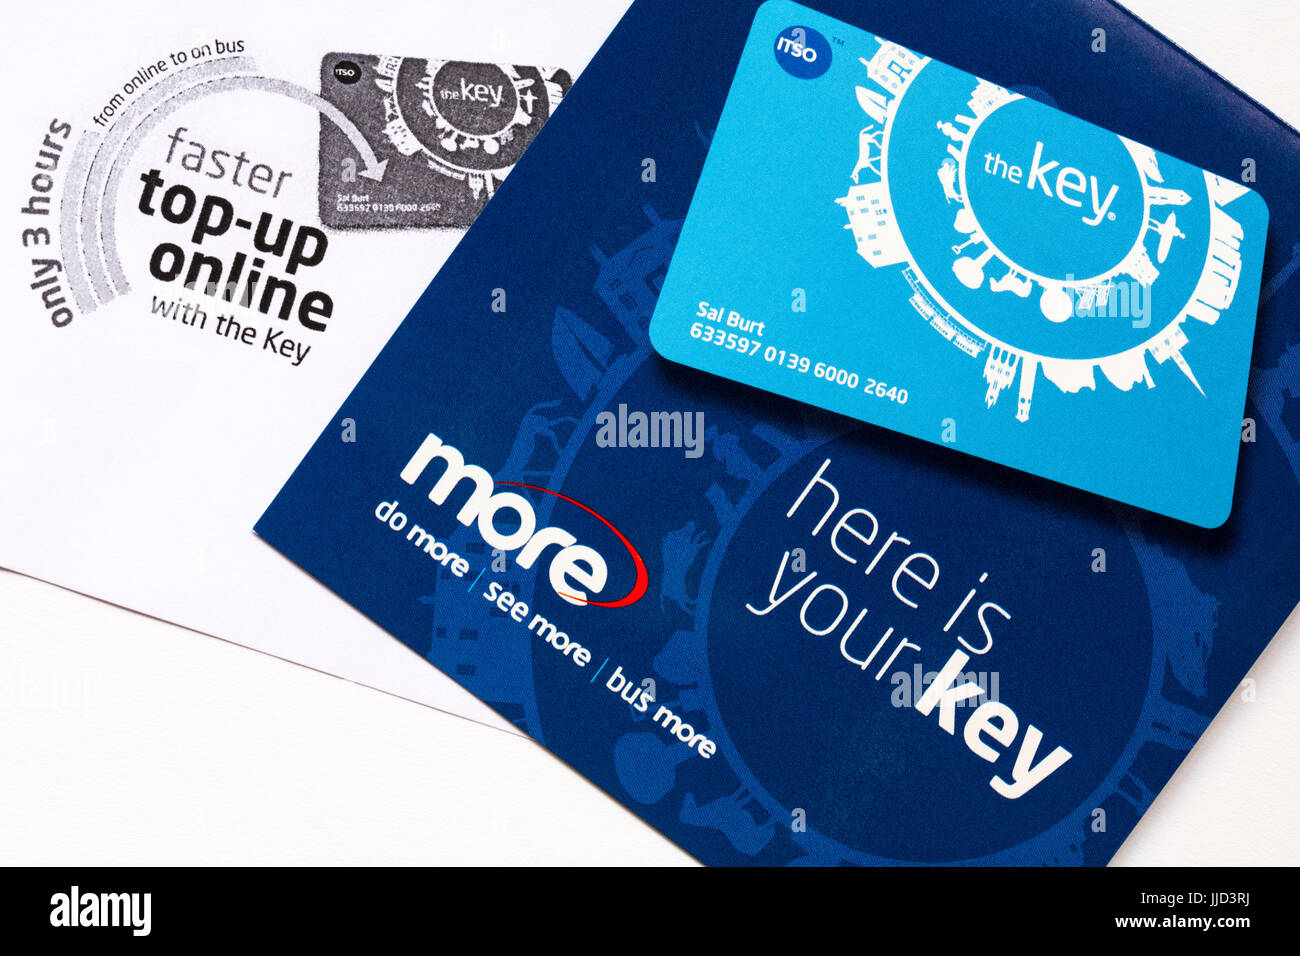 More buses the key smartcard to purchase bus tickets online in advance and get discounts Stock Photo